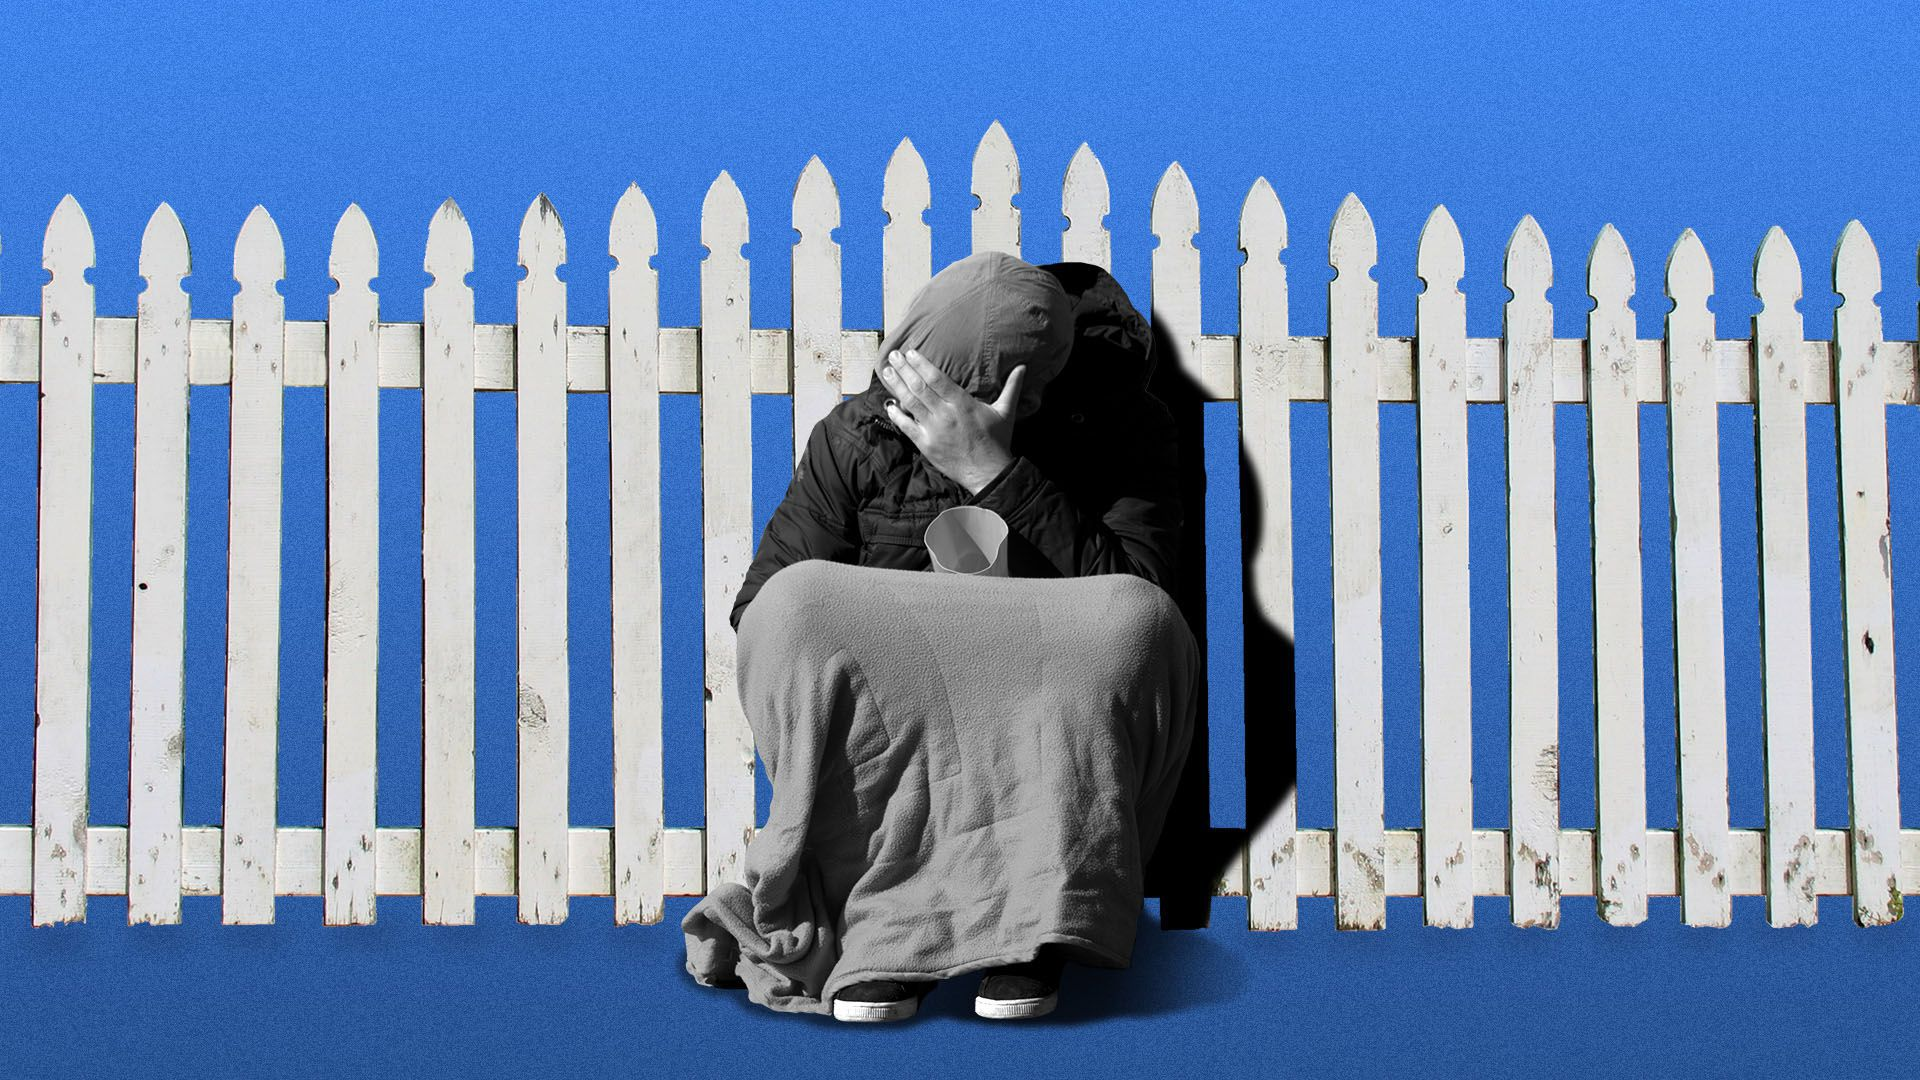 Illustration of a homeless person sitting in front of a white picket fence